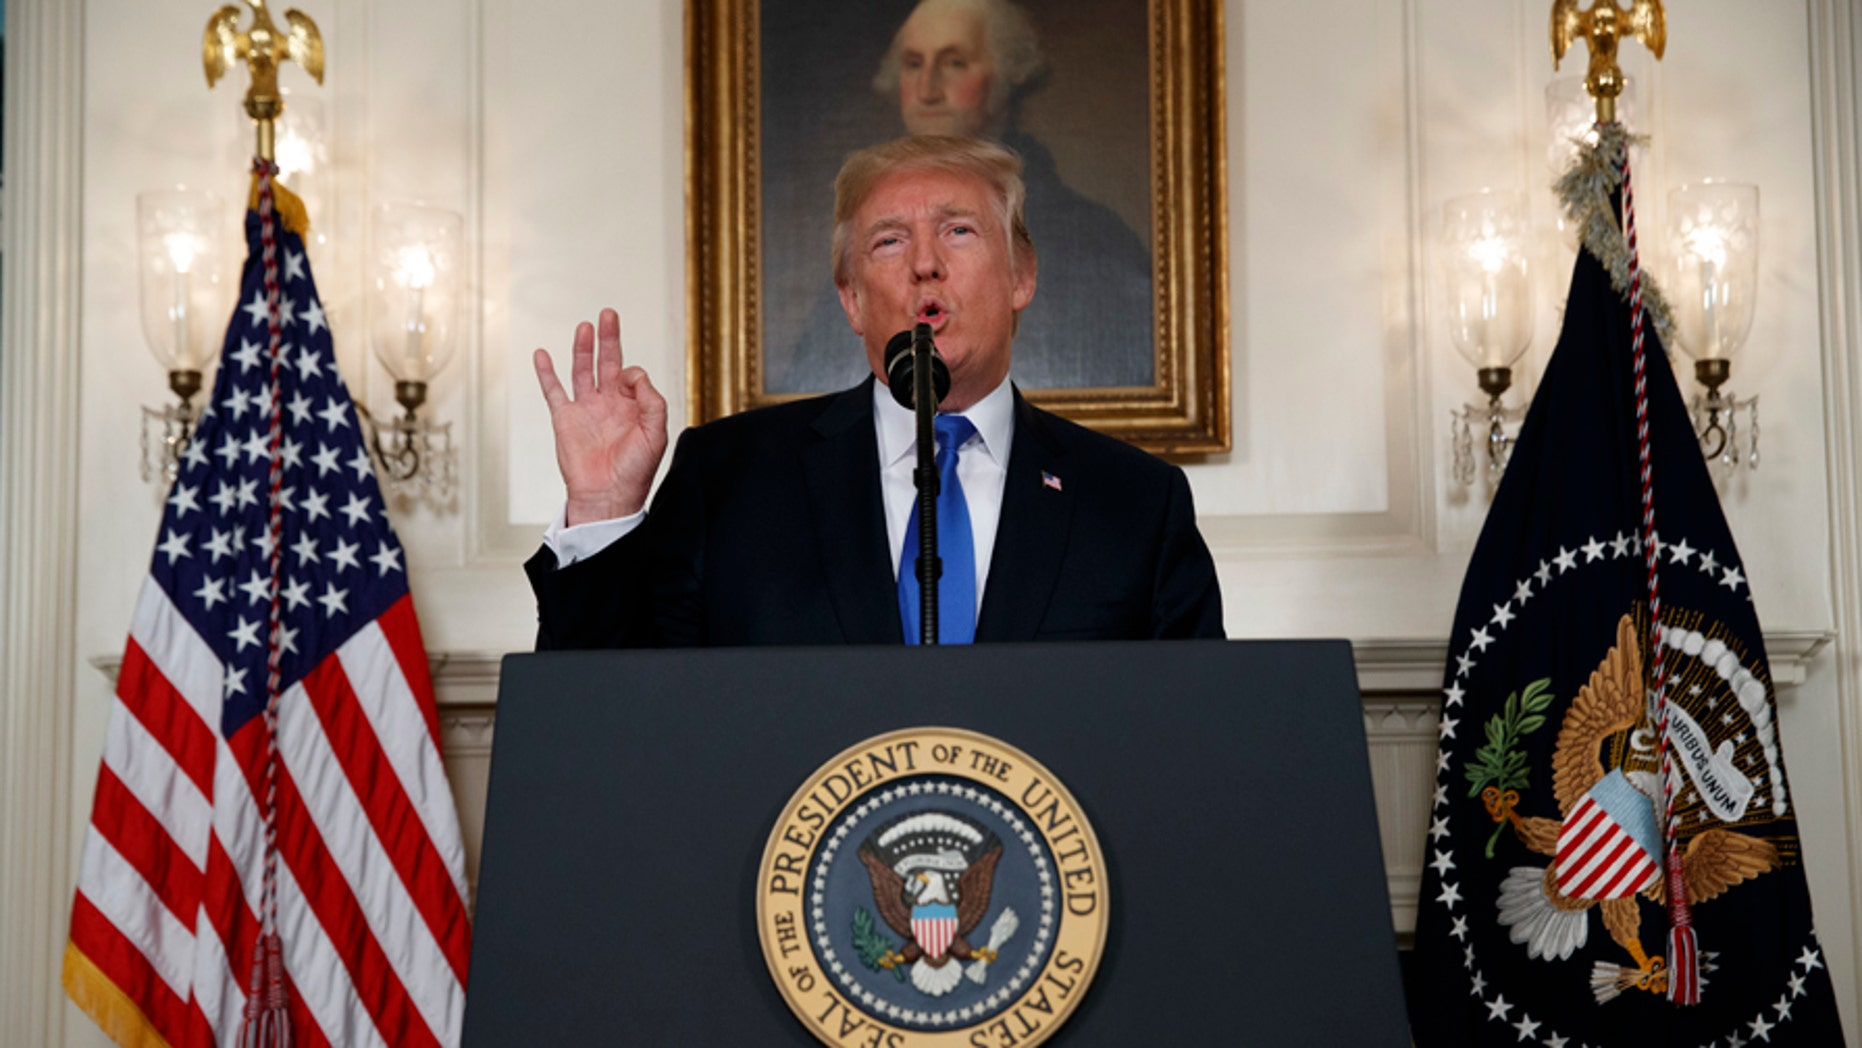 A judge recommended Thursday that President Donald Trump mute rather than block some of his critics from following him on Twitter to resolve a First Amendment lawsuit. ((AP Photo/Evan Vucci)